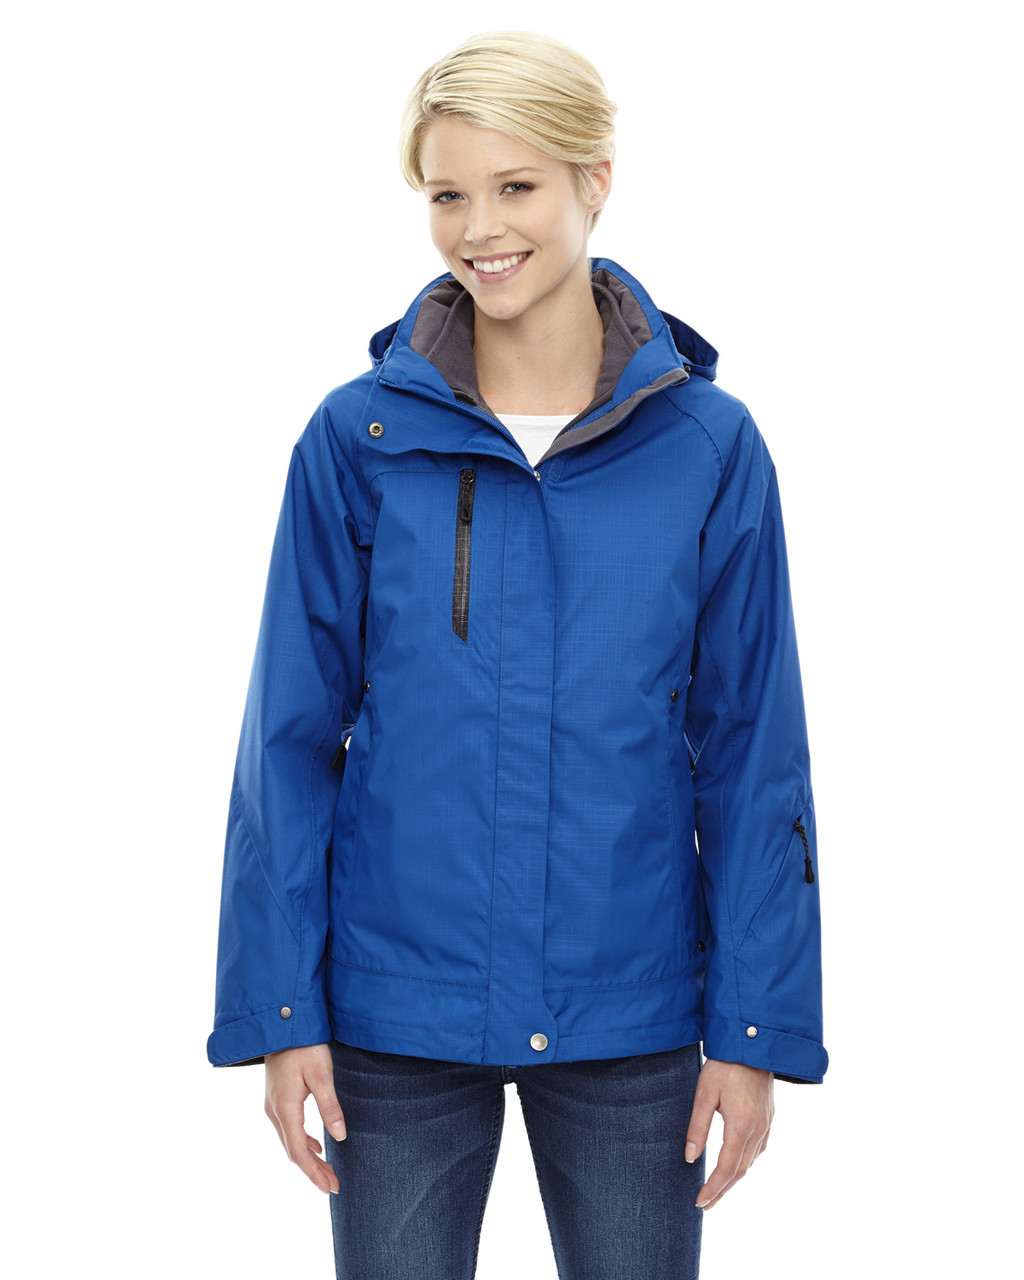 Nautical Blue - 78178 North End Caprice 3-in-1 Jacket with Soft Shell Liner | Blankclothing.ca